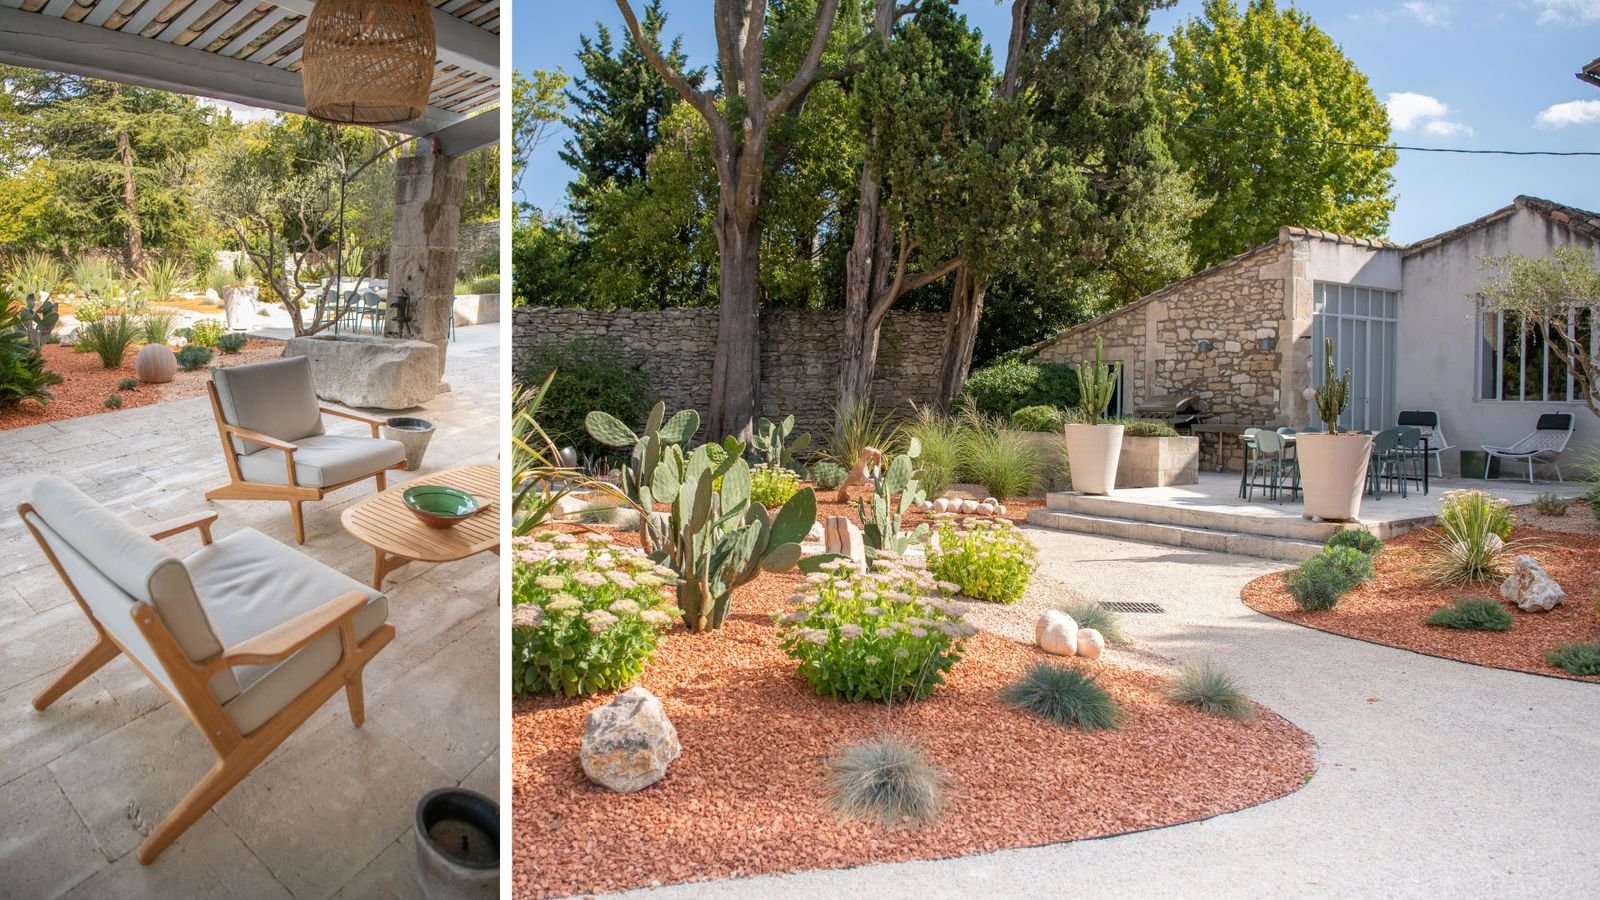 Luxurious house to rent for vacations in Provence